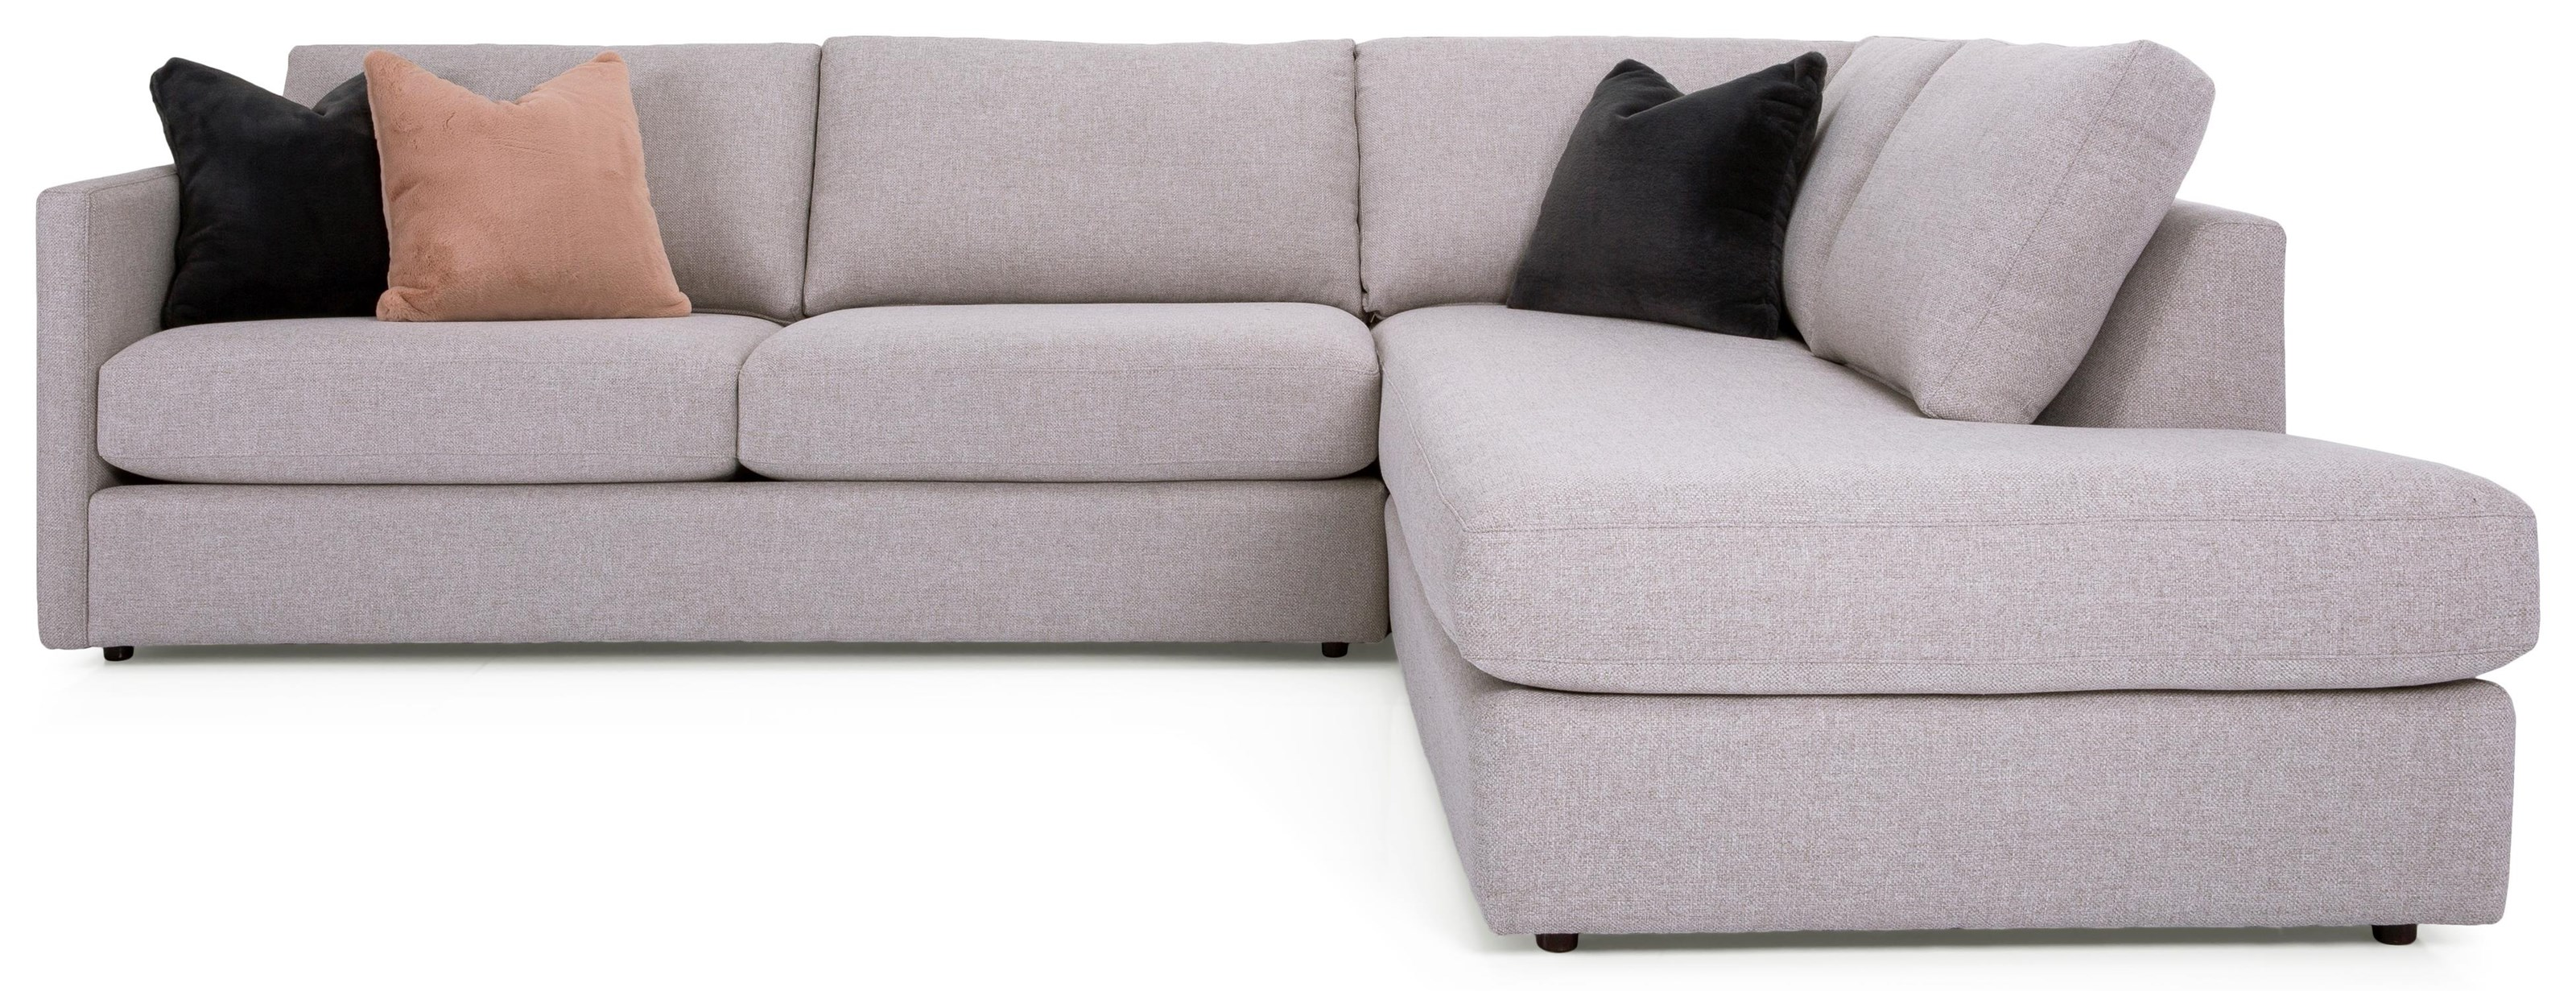 Tess Sectional with Chaise by Taelor Designs at Bennett's Furniture and Mattresses